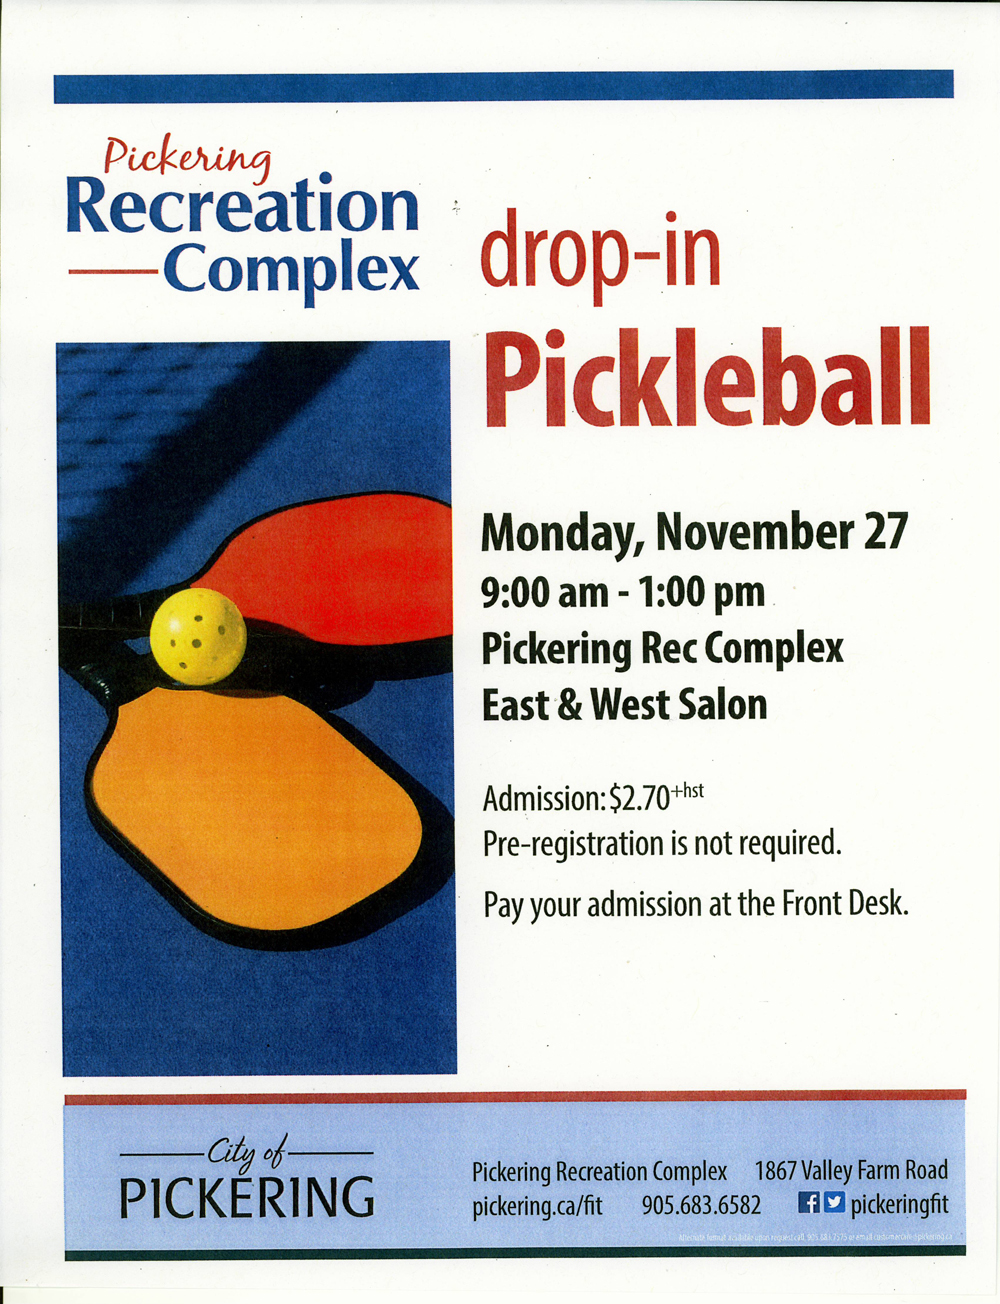 Pickering Recreation Complex Introduces Pickle Ball – November 27th